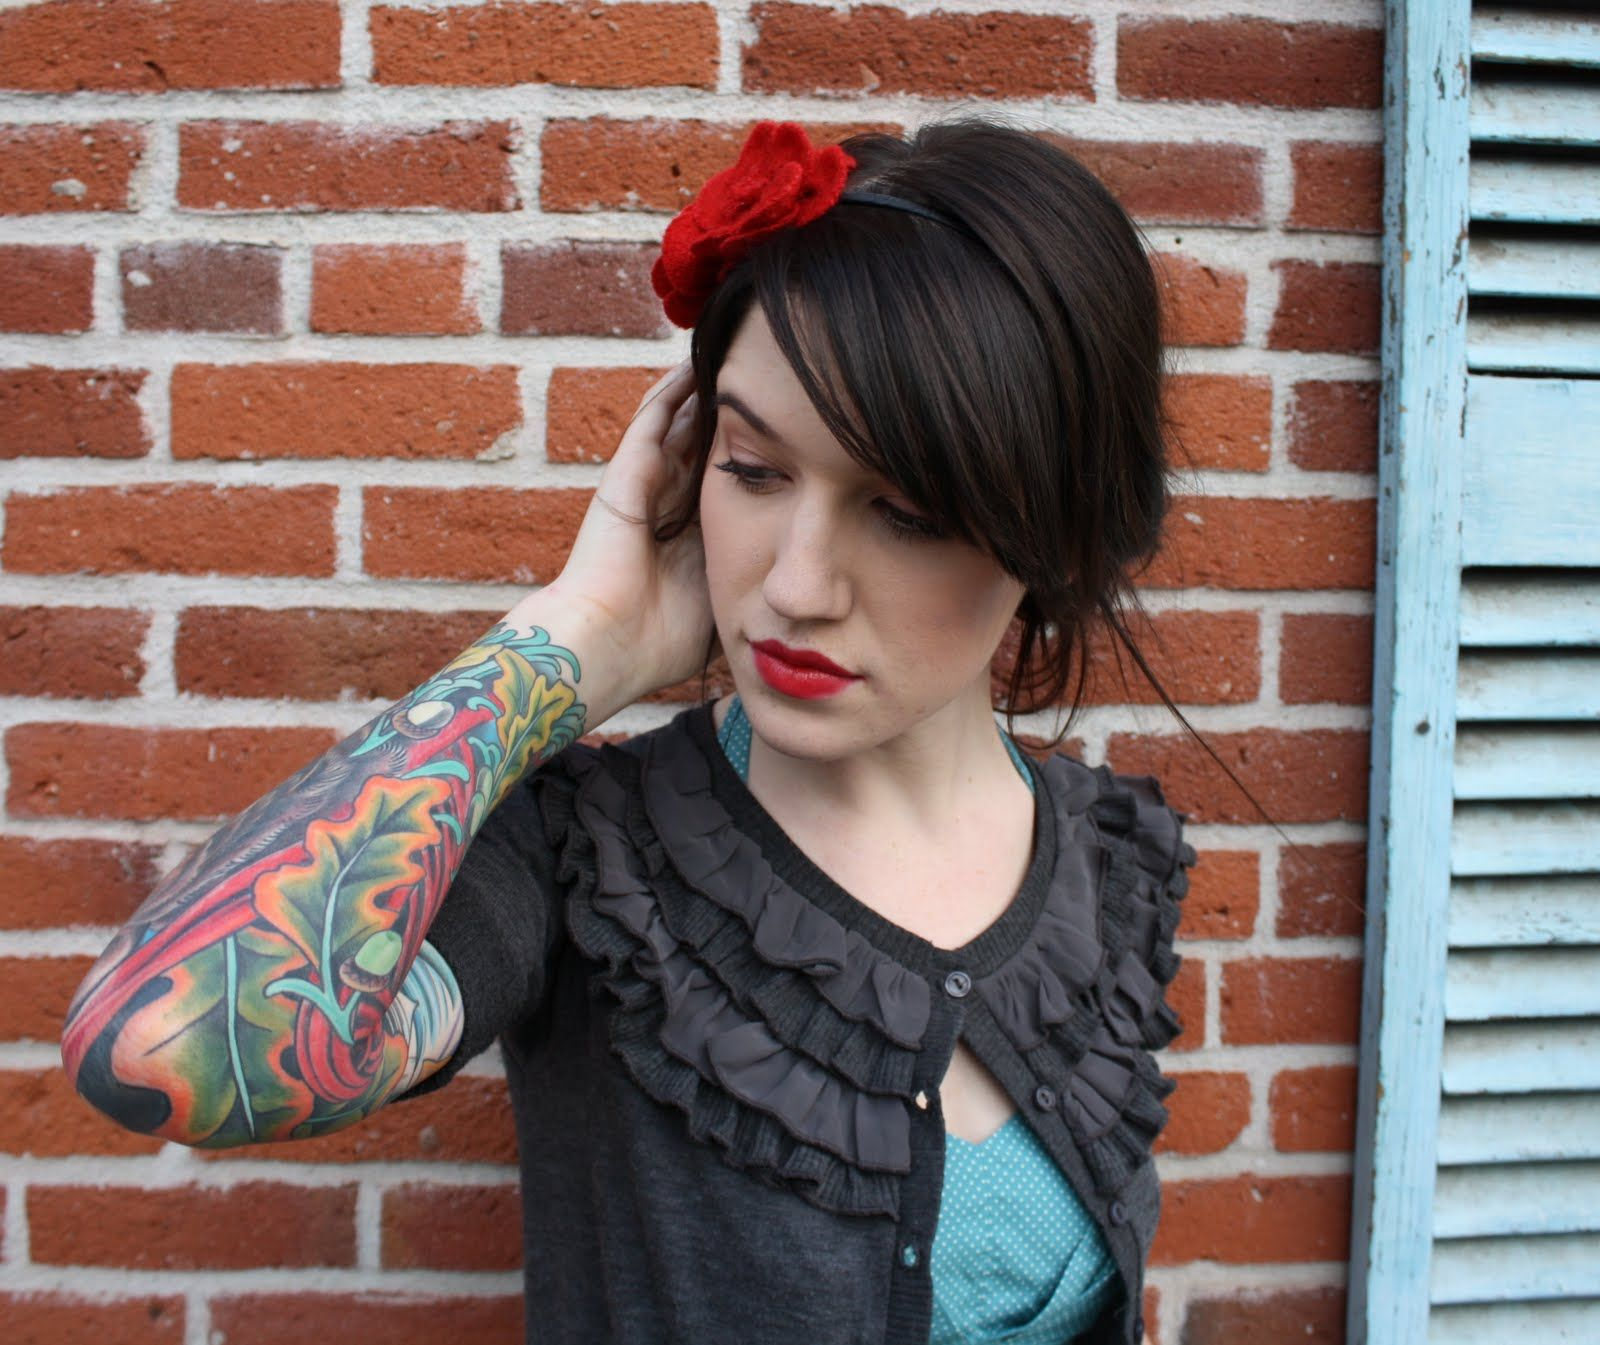 I like the look. Sweet cardigan with the aqua shirt, red lips and headband with her dark hair.